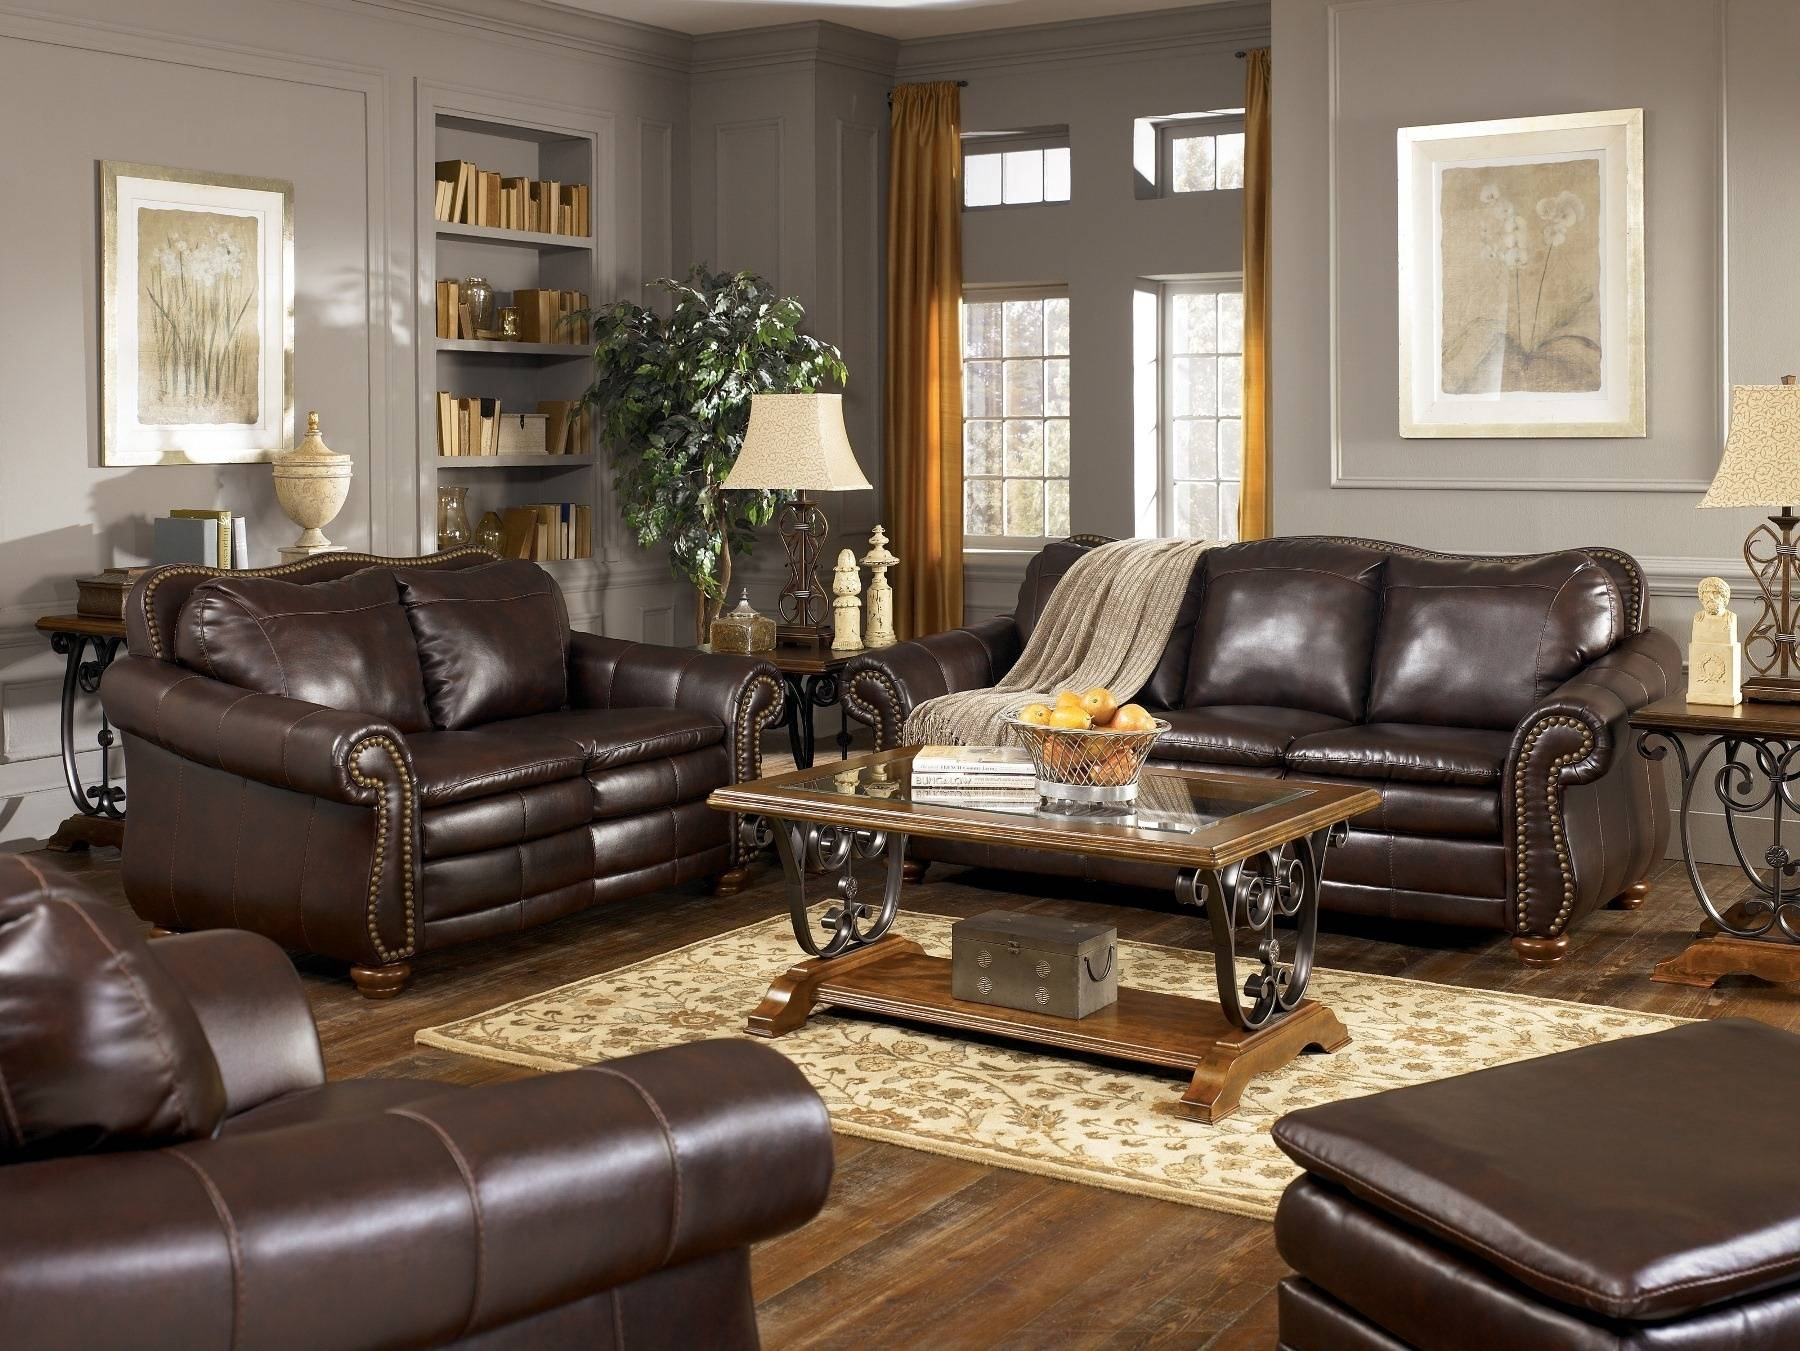 Showing Gallery Of Country Style Sofas And Loveseats View 8 30